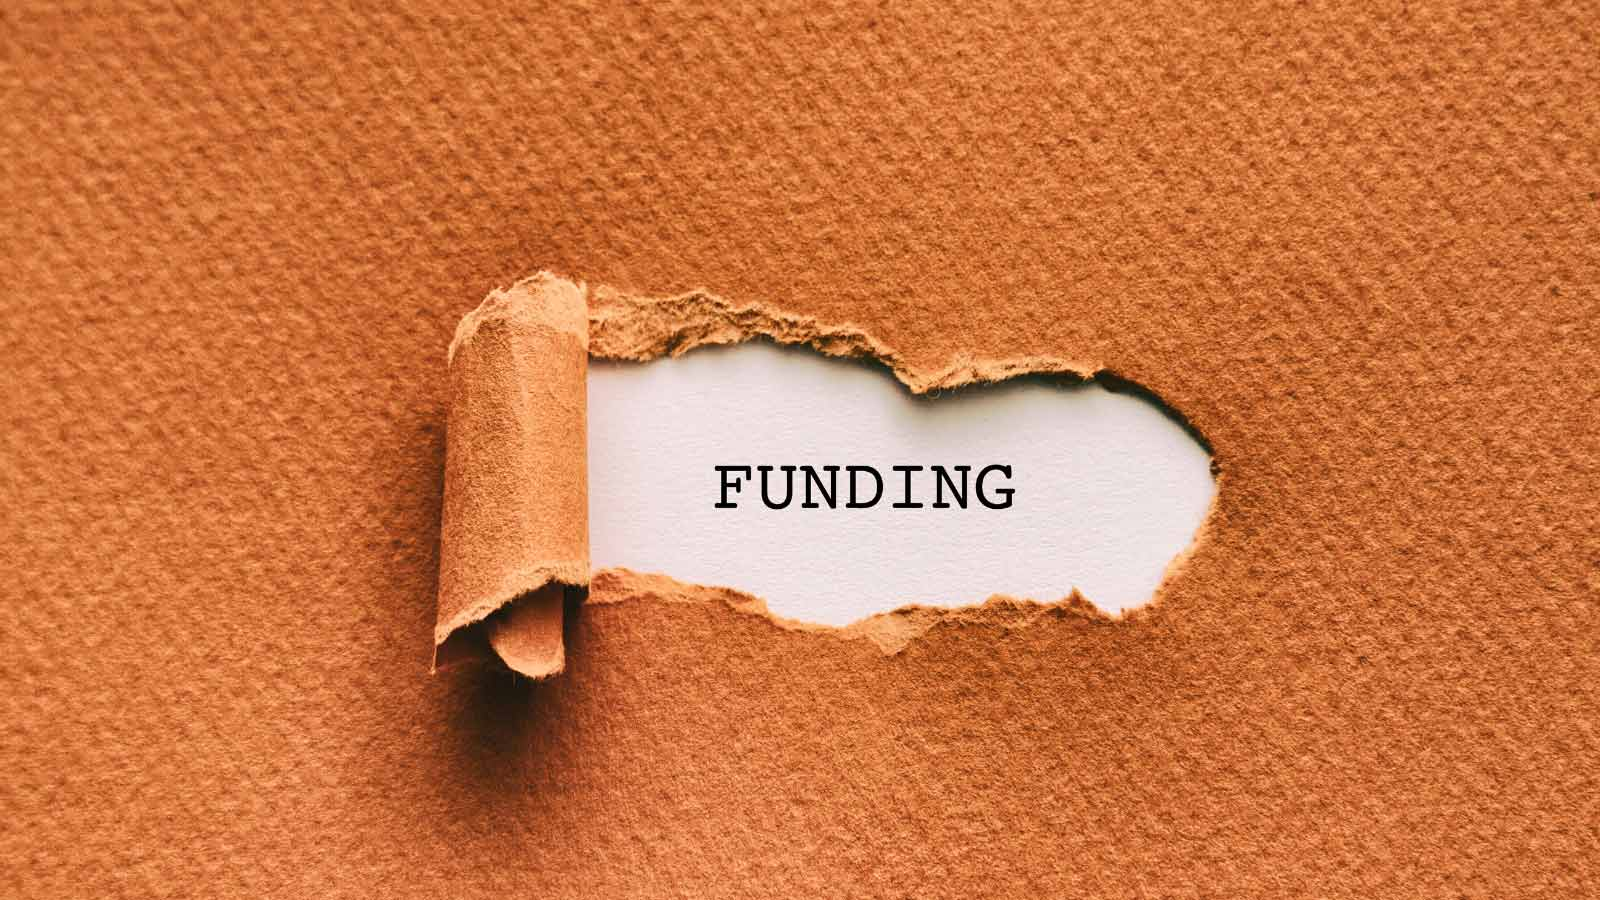 Federal funding is coming